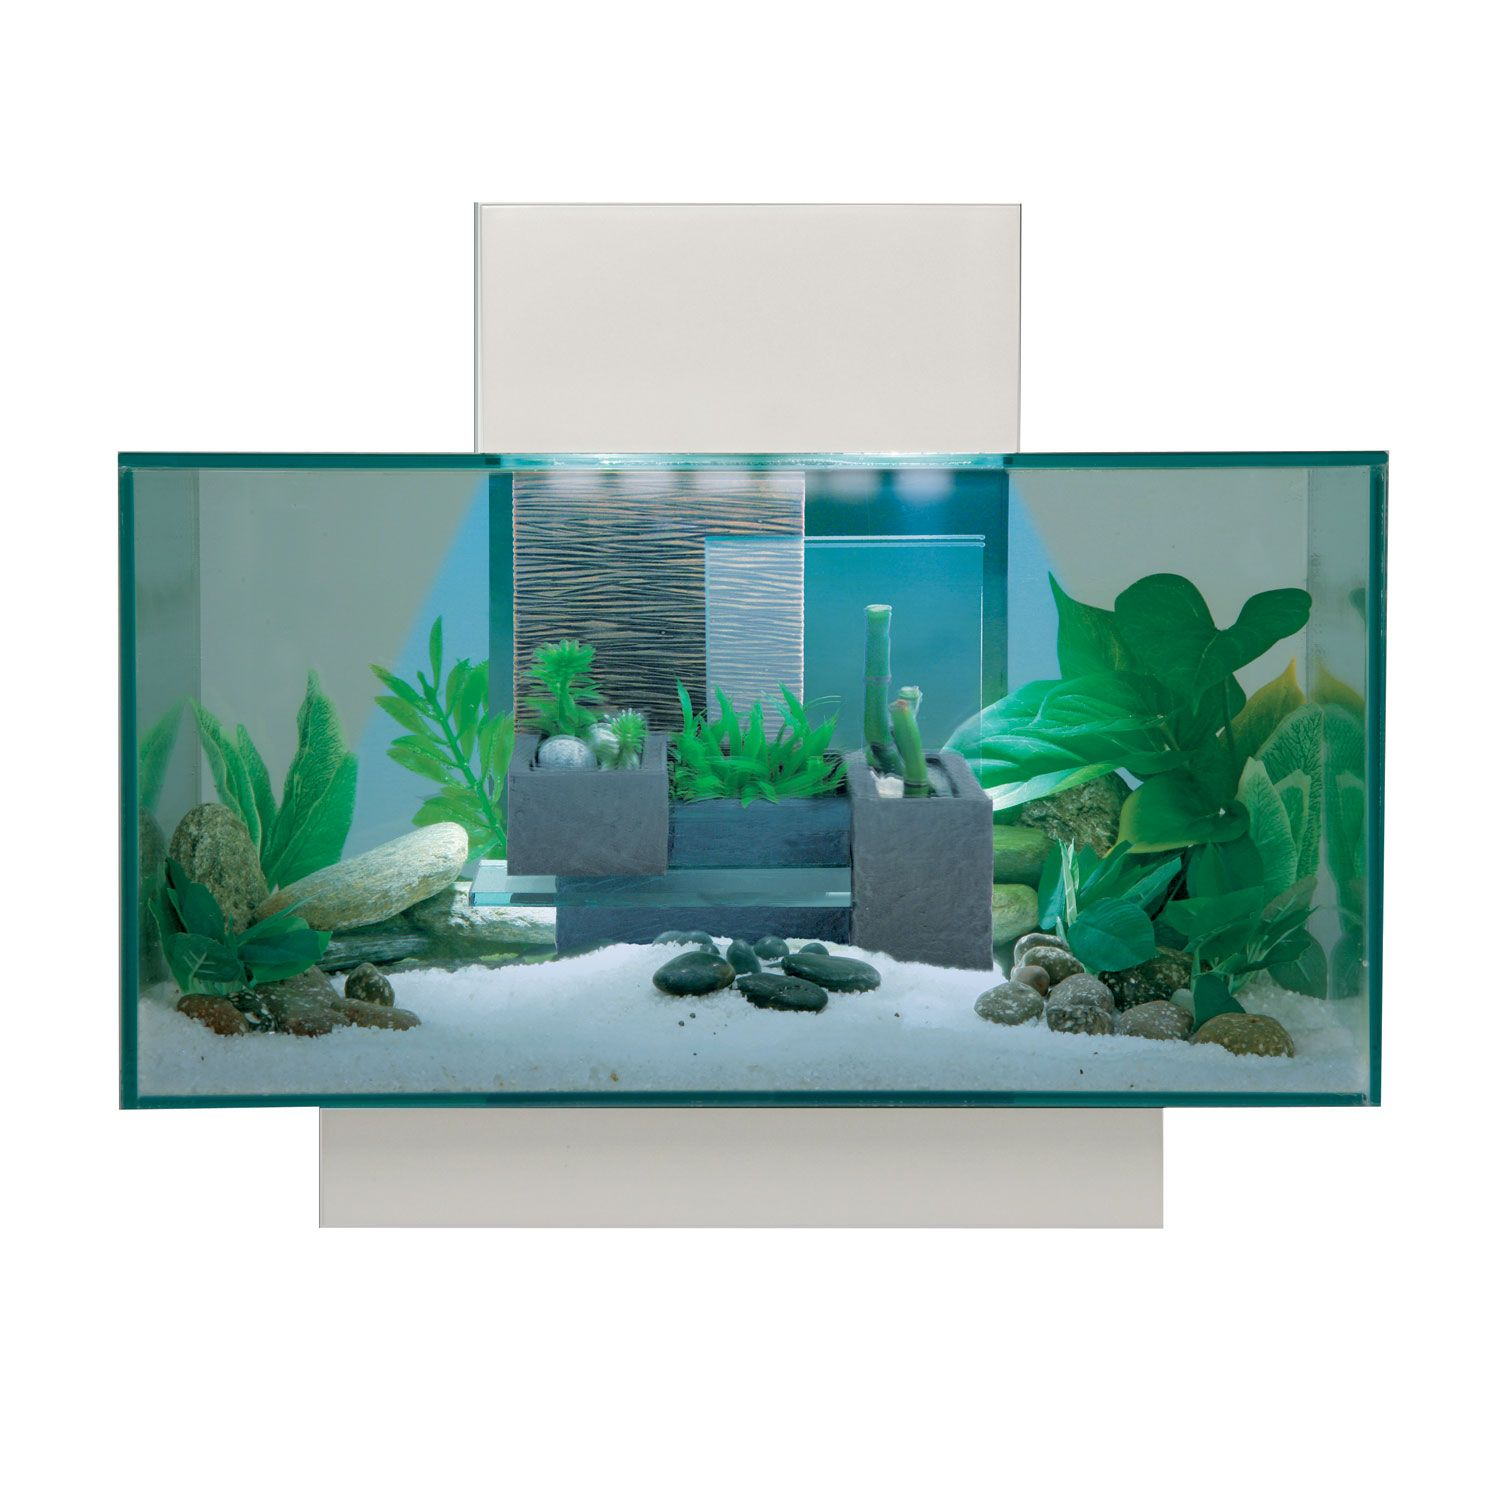 Fluval edge aquarium kit in white fish tank inspiration for Fluval fish tank